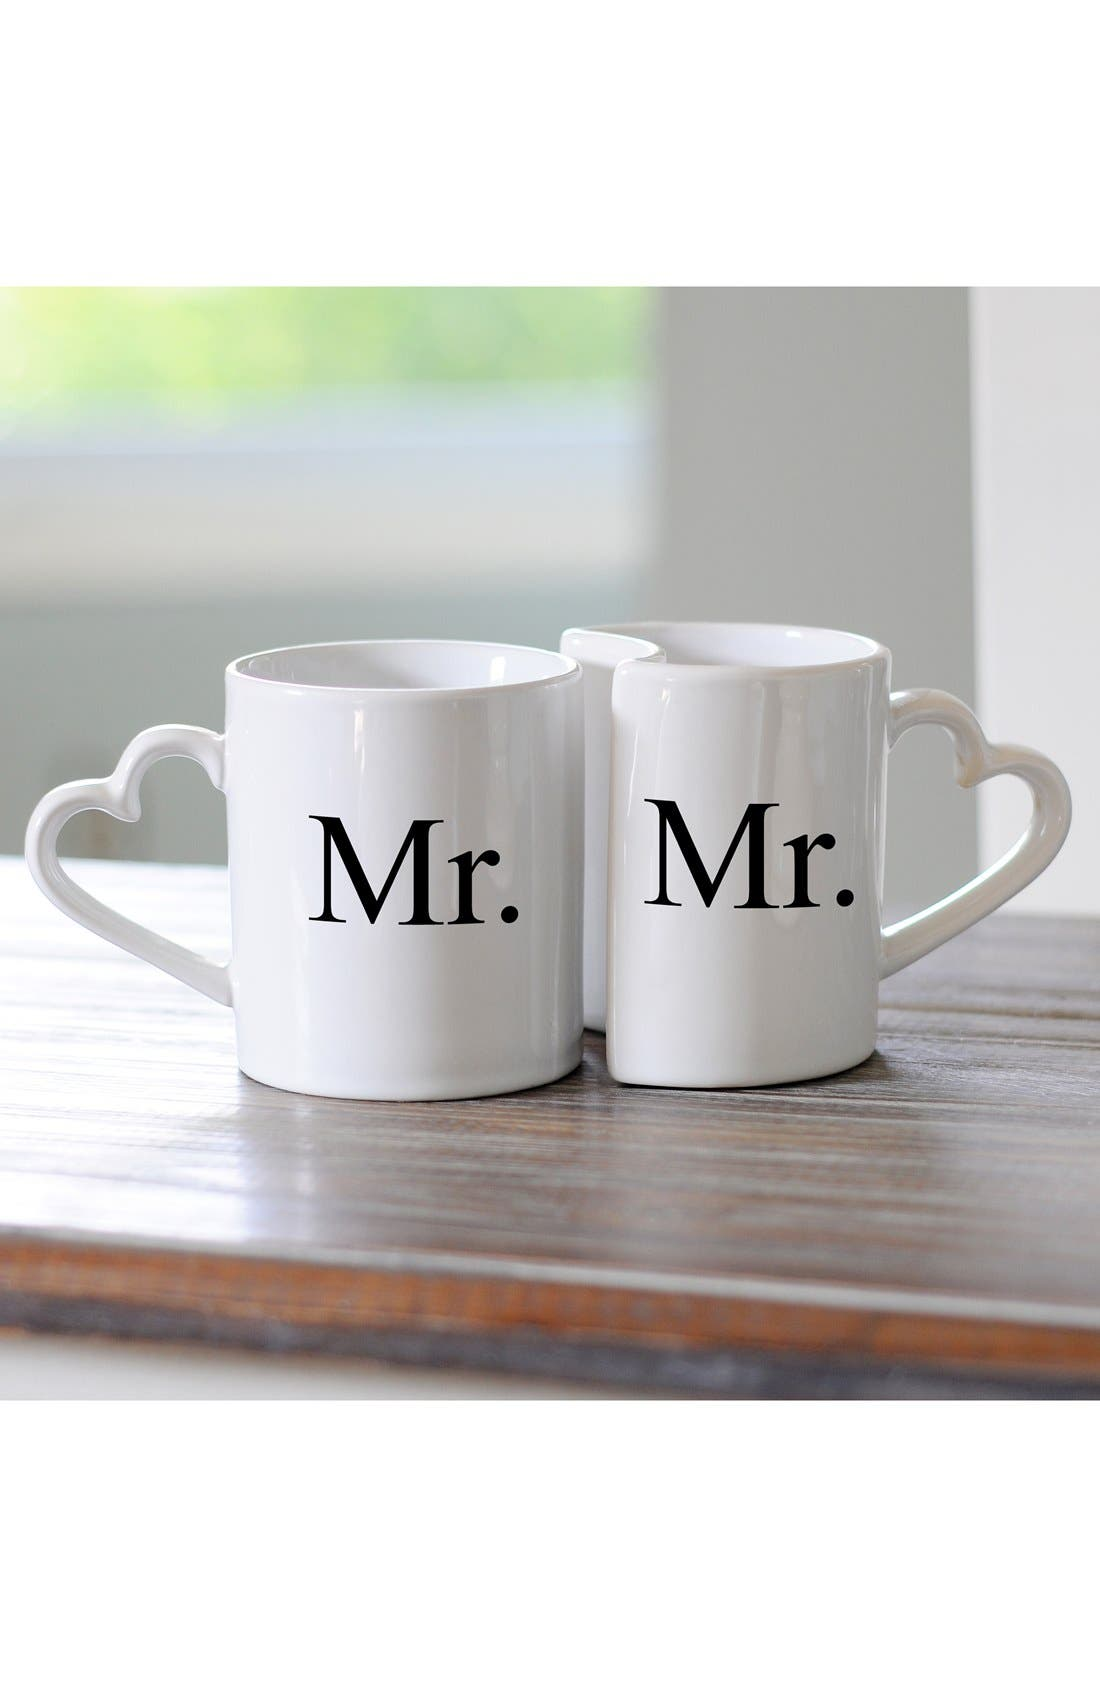 'For the Couple' Ceramic Coffee Mugs,                         Main,                         color, Mr/ Mr